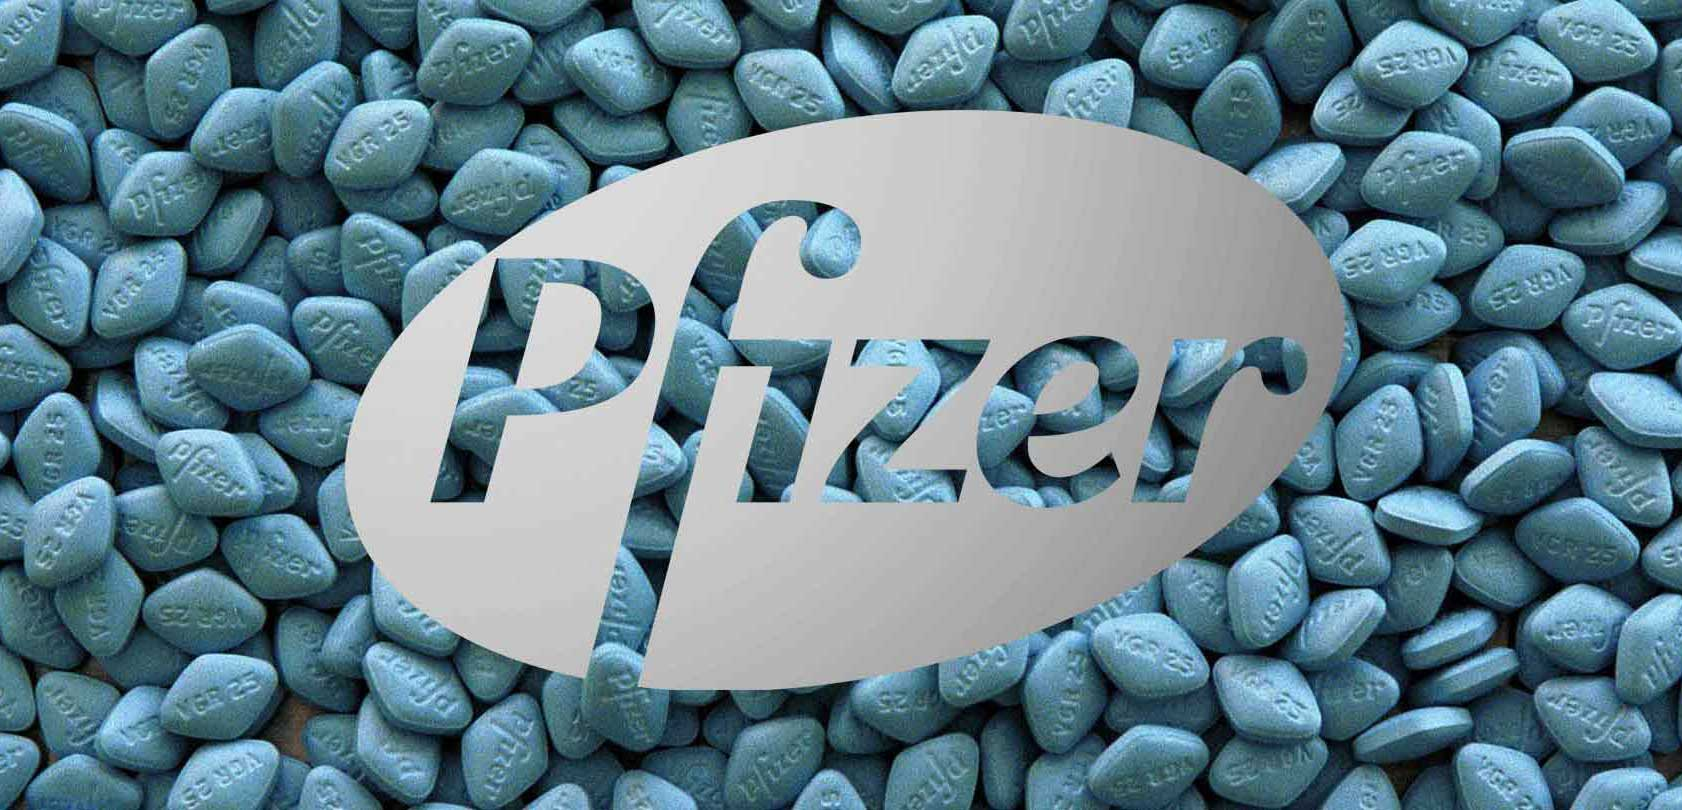 pfizer and warner-lambert acquisition deal